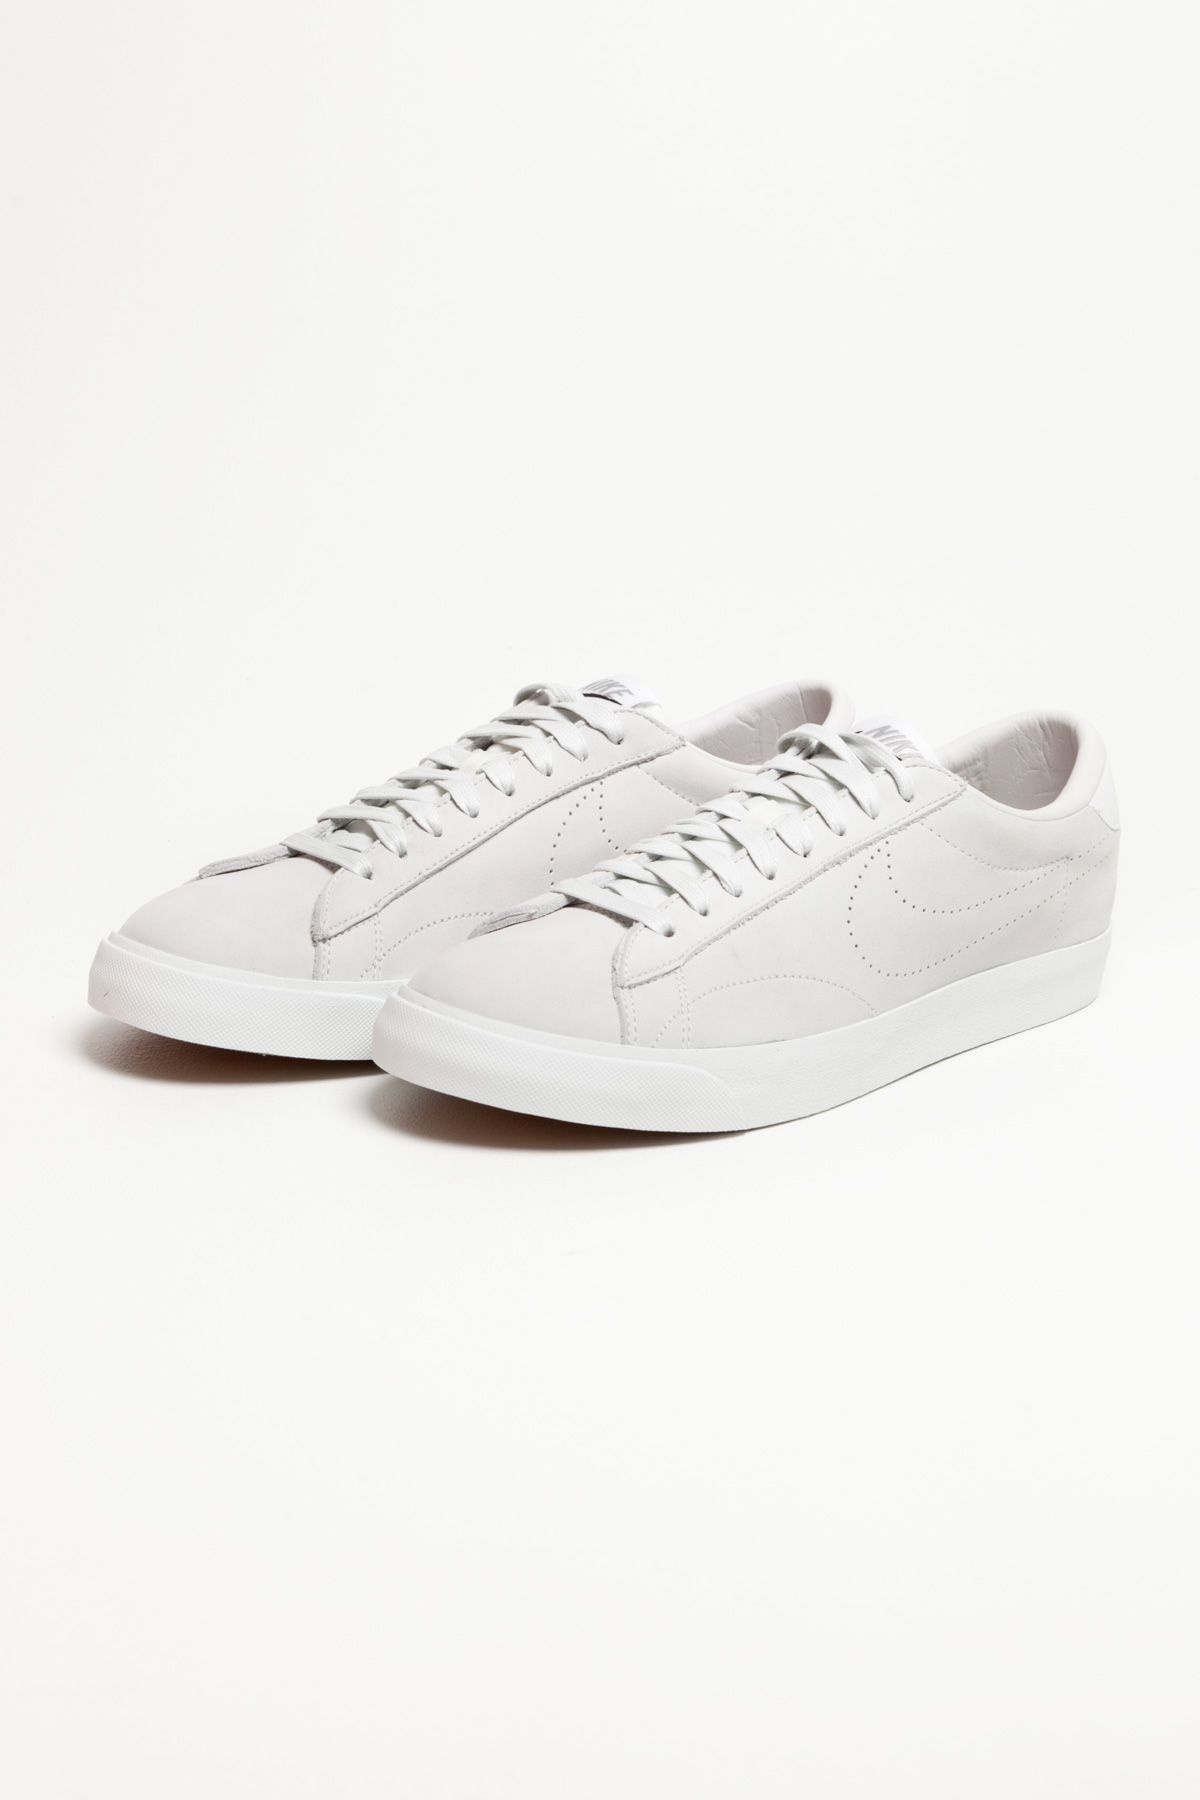 Pin by V Söderqvist on White | Black nike shoes, Sneakers